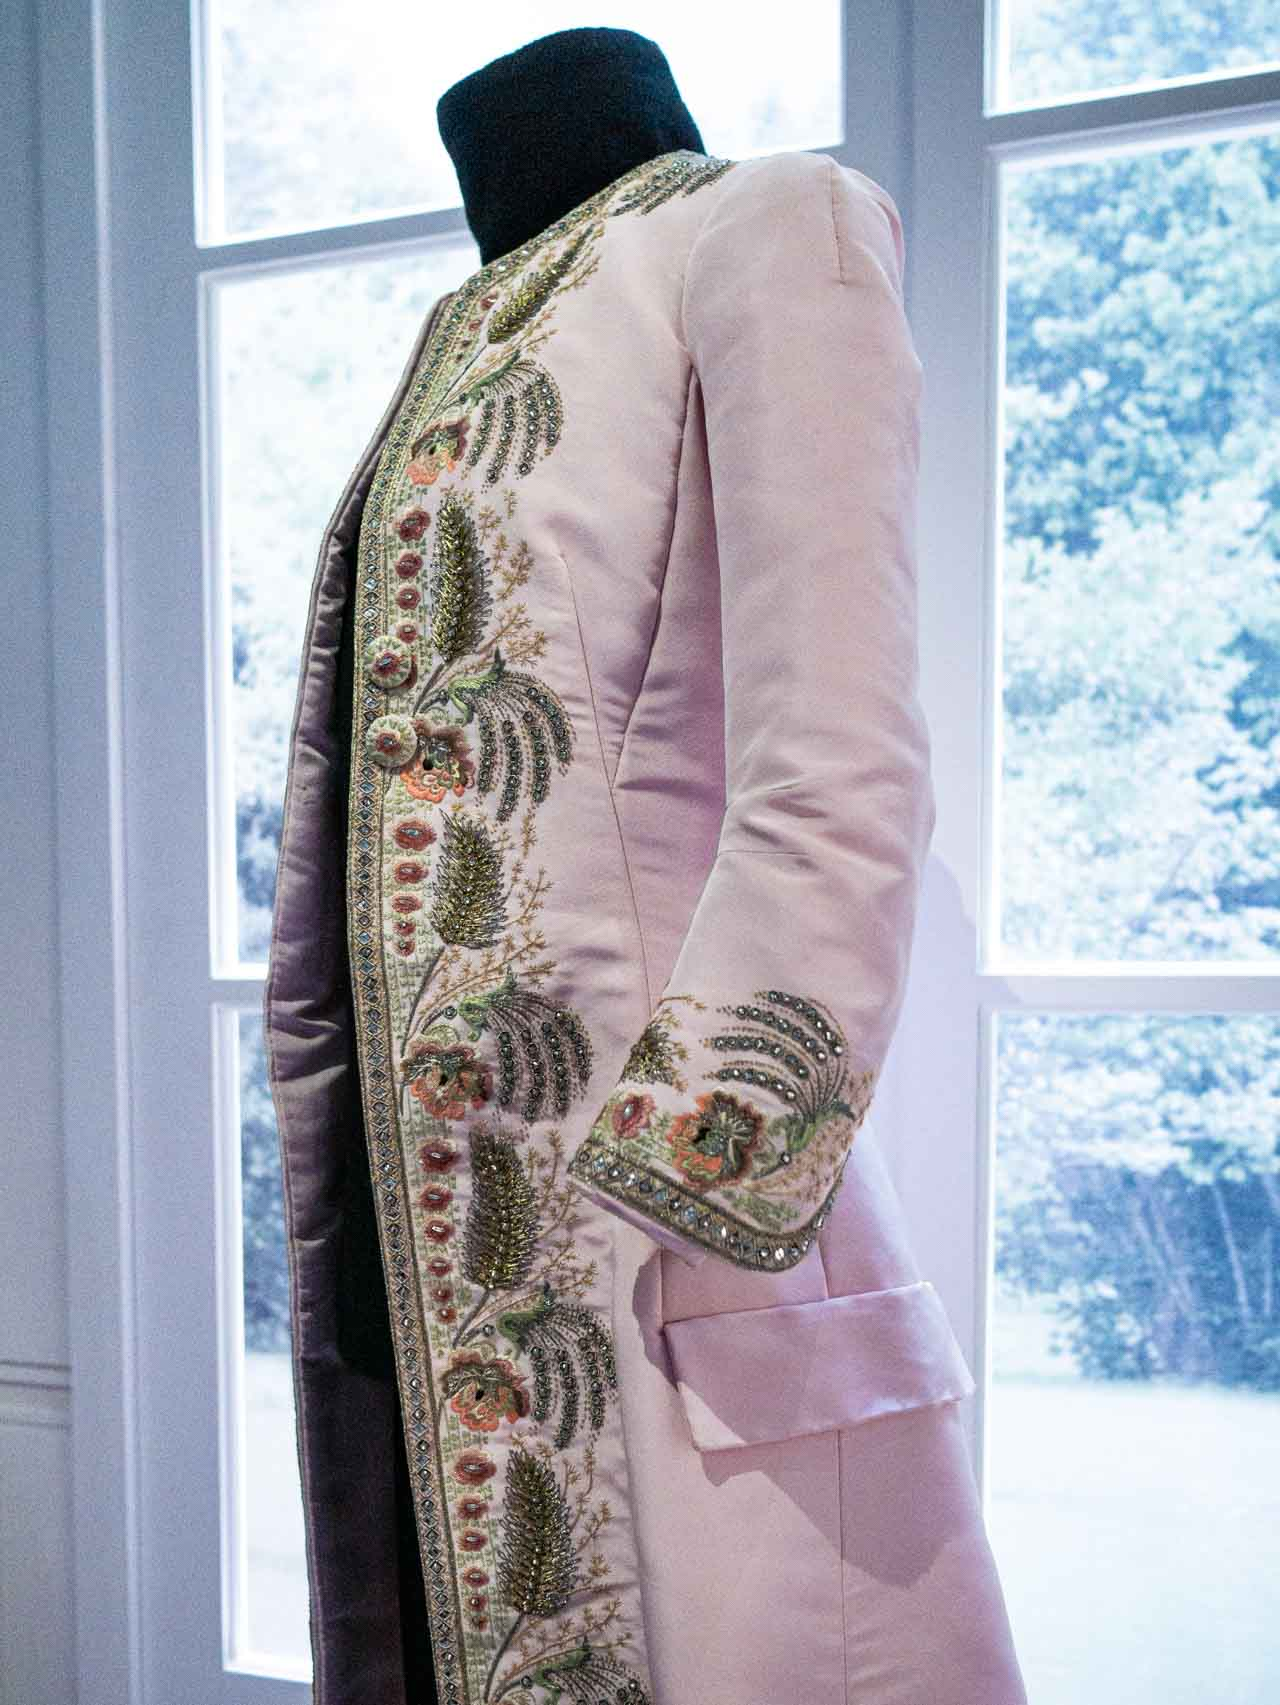 Pale pink coat referencing 18th-century court attire. Christian Dior by Raf Simons, Haute Couture, AW14. Taken at the V&A exhibition © The Cutting Class, 2019.